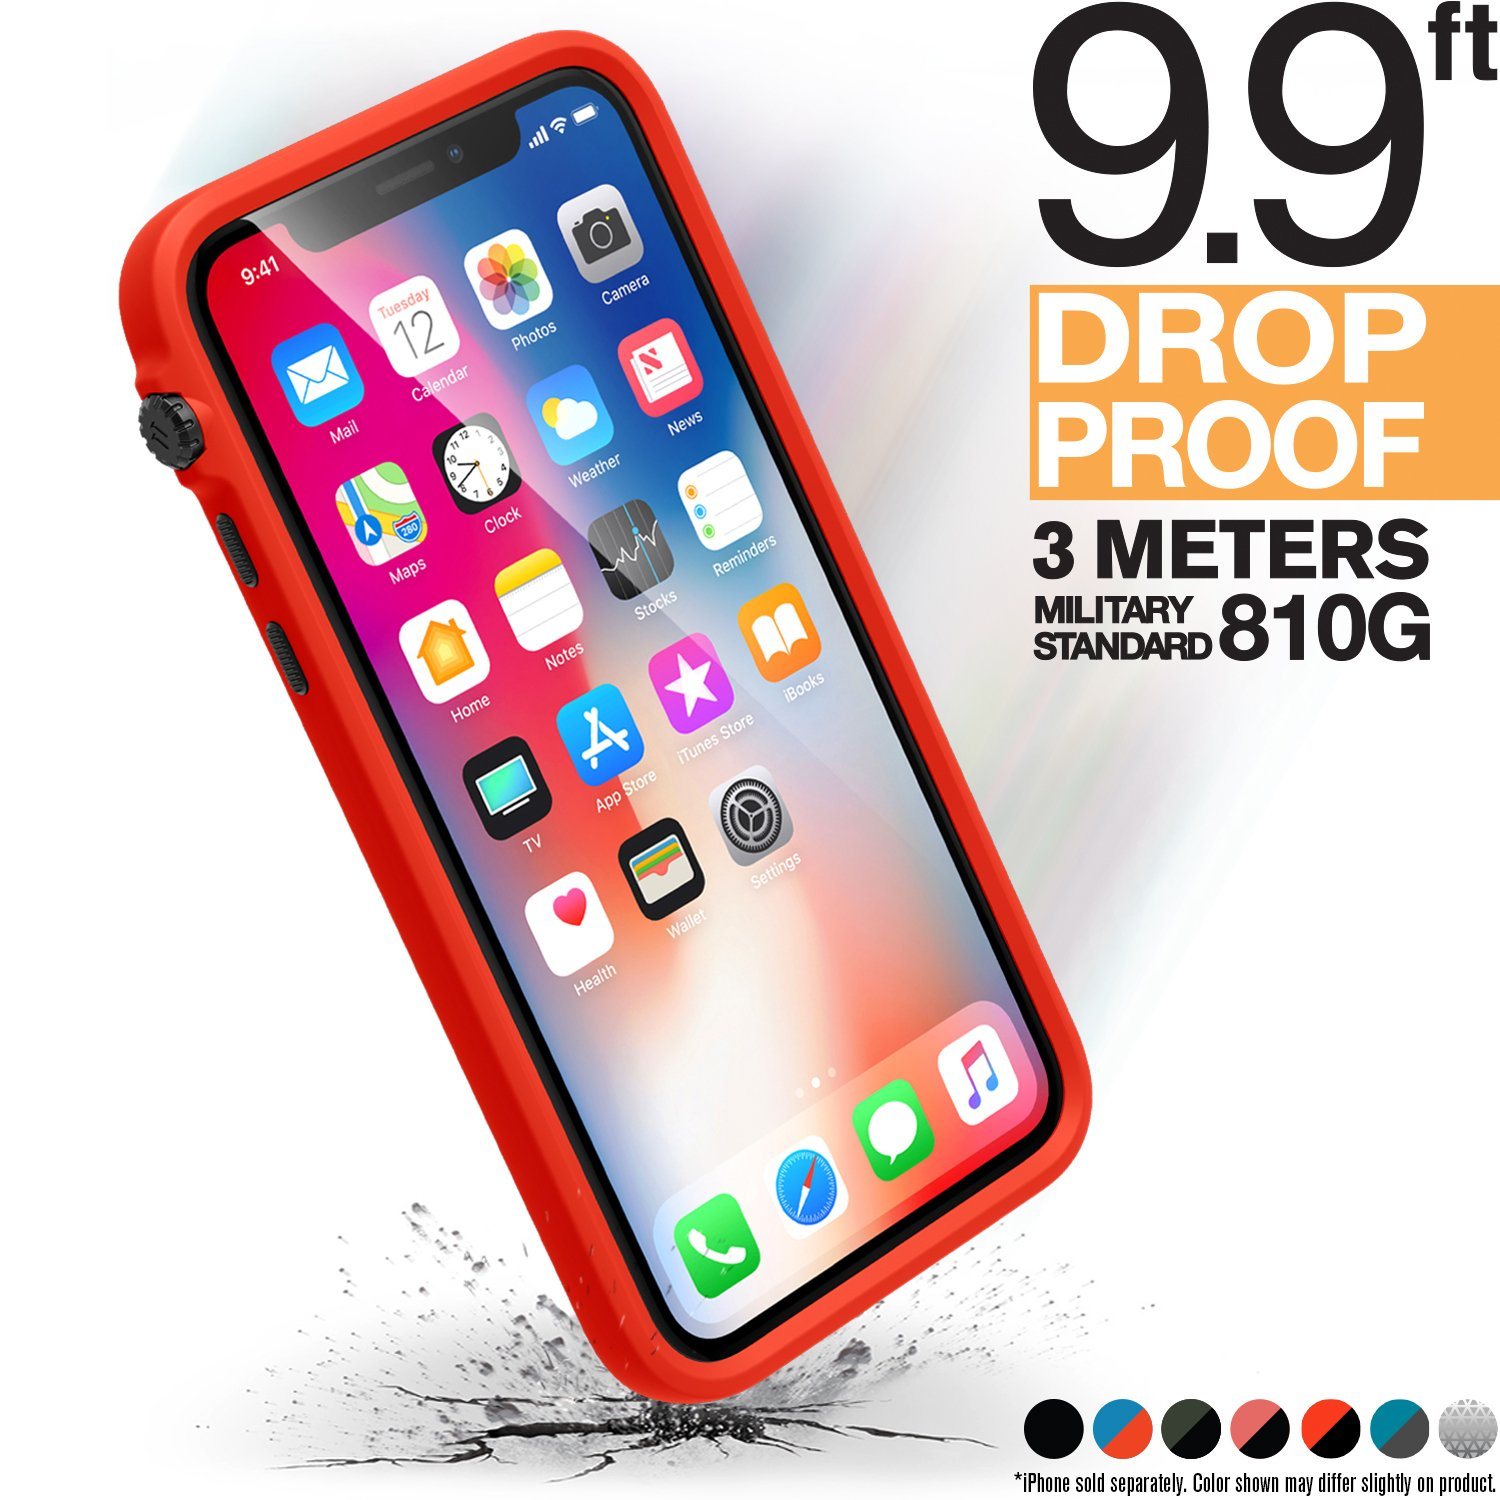 Catalyst iPhone Xs Case Impact Protection Compatible iPhone X, Military Grade Drop and Shock Proof Premium Material Quality, Slim Design, Sunset by Catalyst